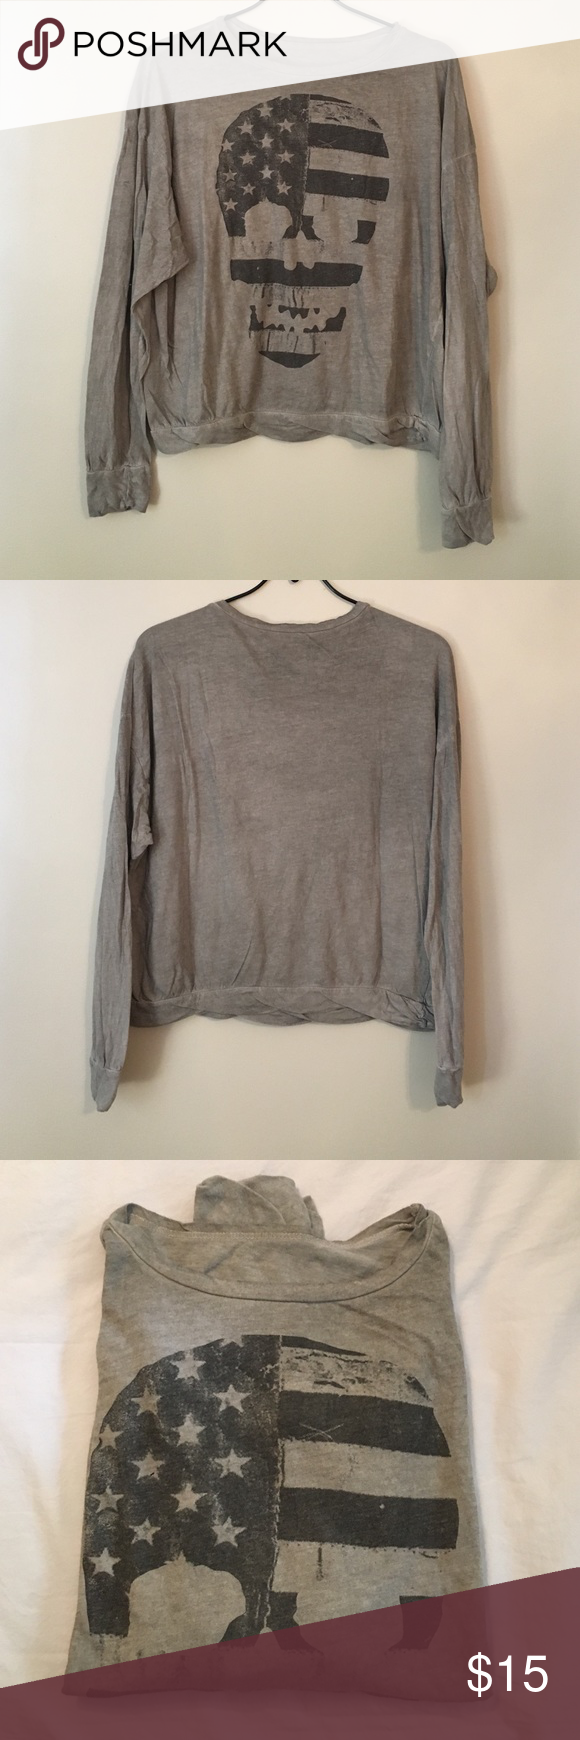 Brandy Melville skull long sleeve In new condition - worn once. One size Brandy Melville Tops Tees - Long Sleeve